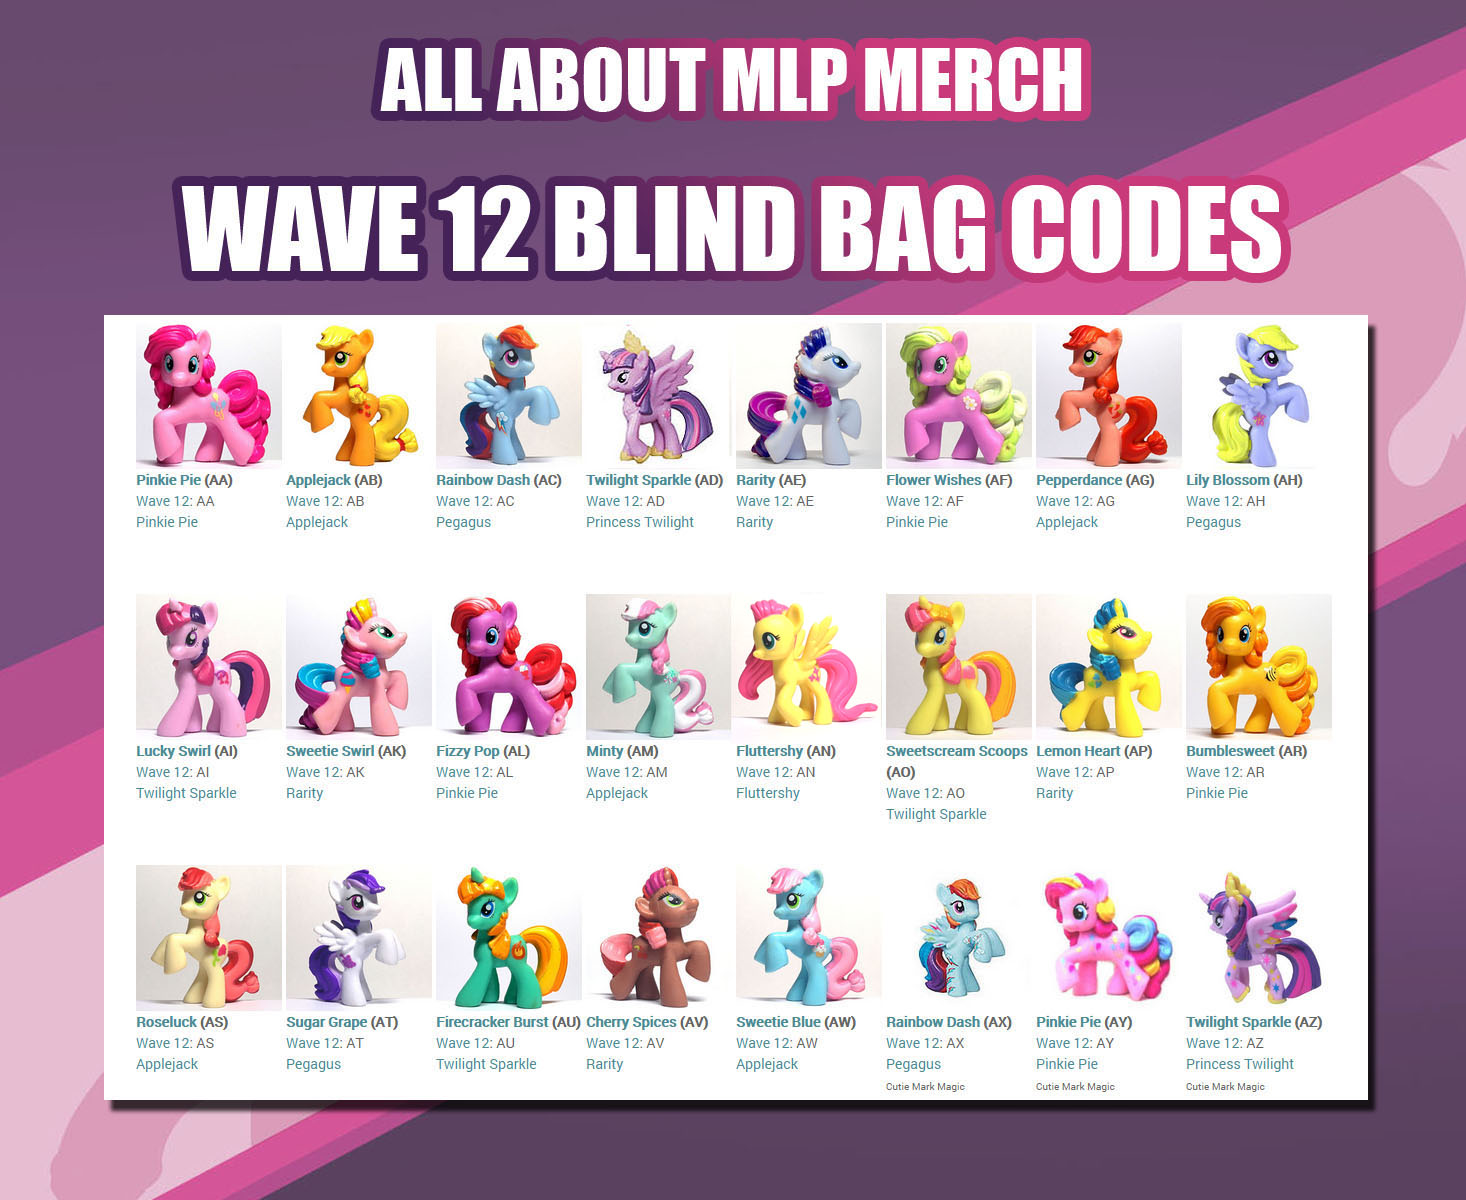 Wave 12 Blind Bag Codes (Cheats)